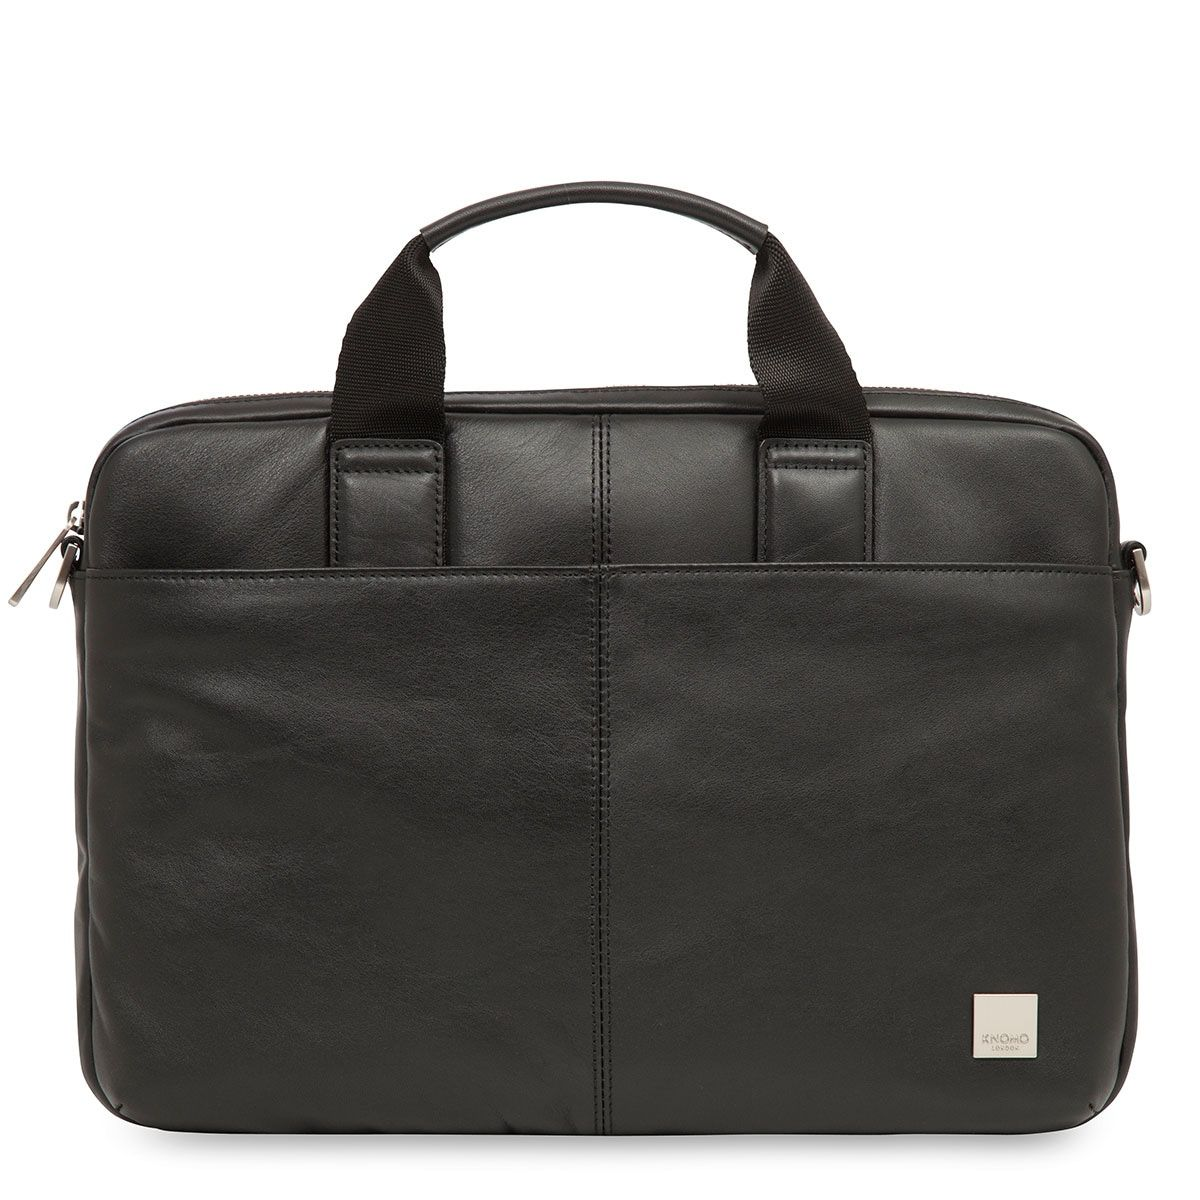 Knomo Stanford Small Leather Briefcase Black 13 inch